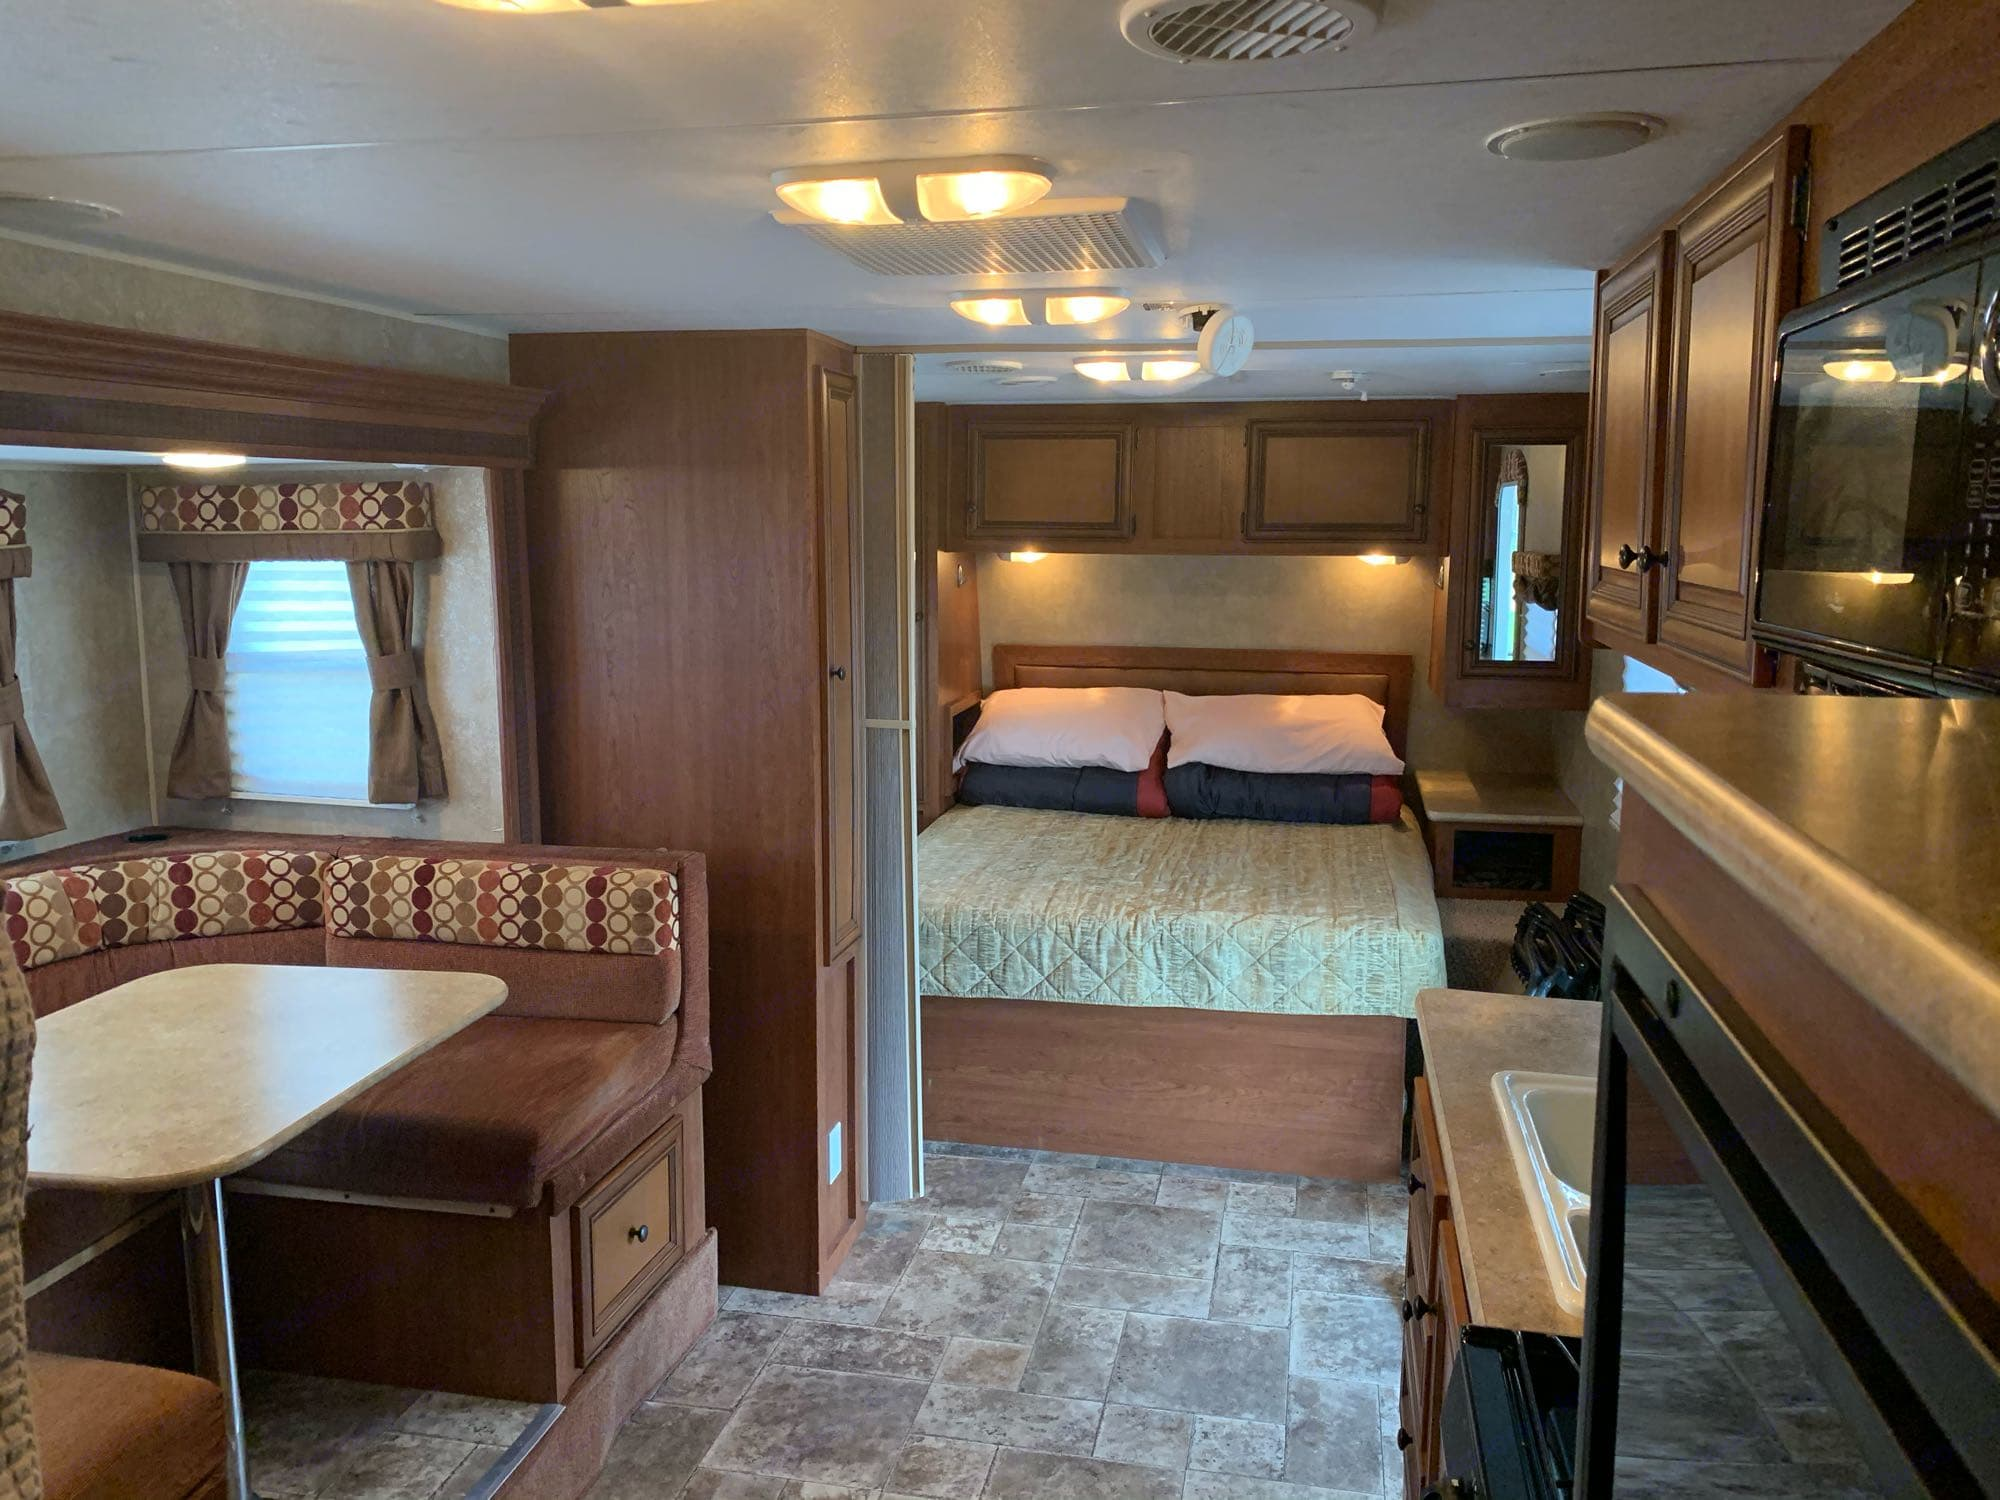 This bedroom queen-sized bedroom has plenty of storage space and an option privacy curtain-wall if you need.. K-Z Manufacturing Other 2012